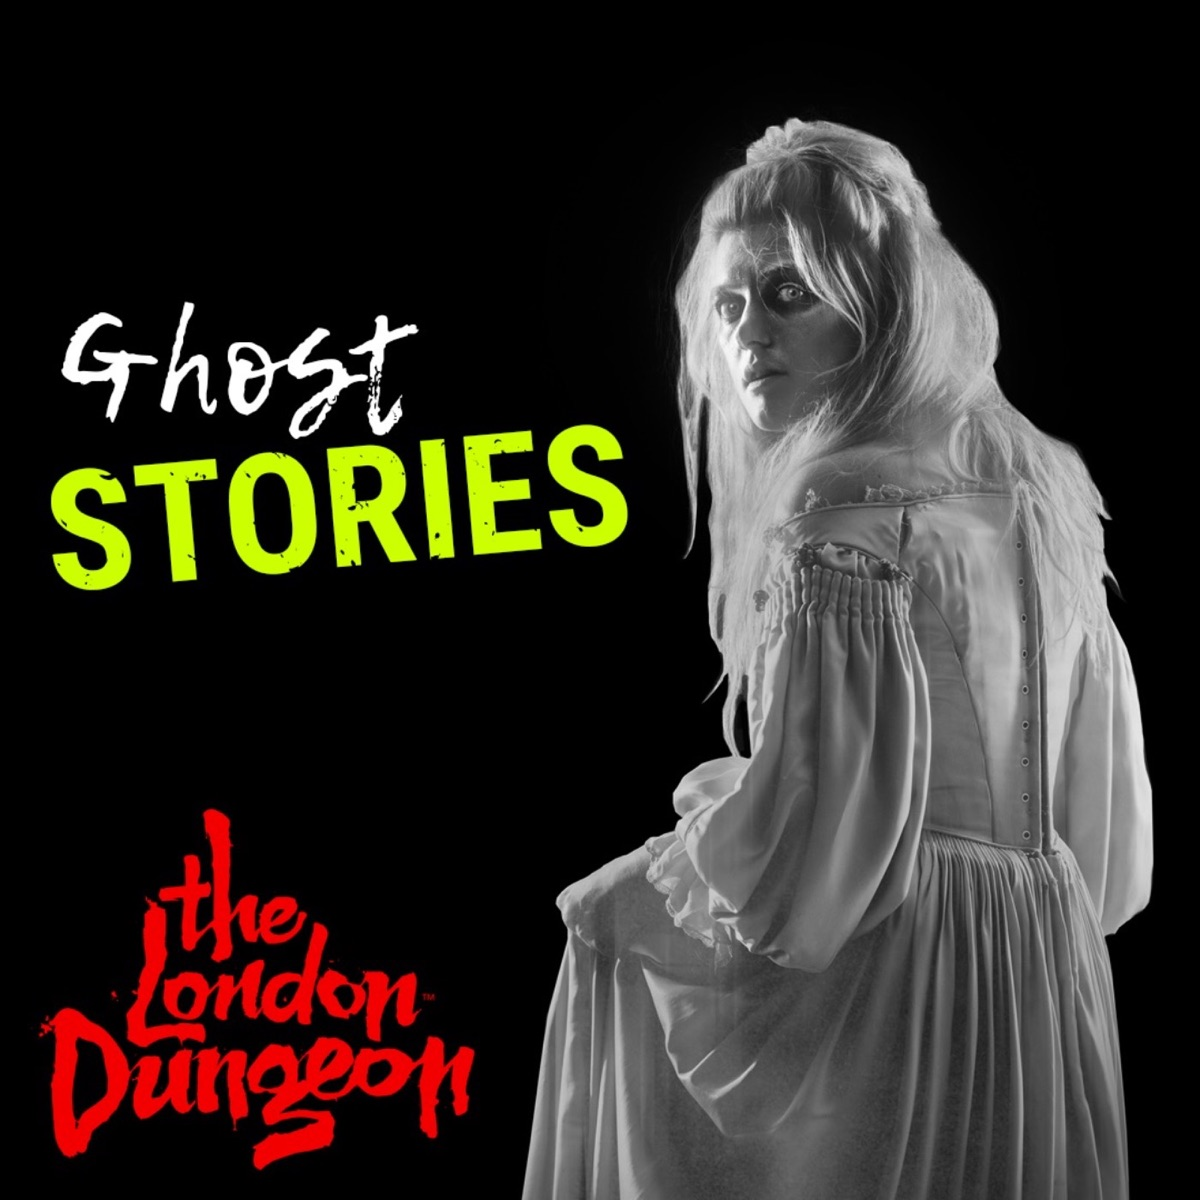 Ghost Stories from The London Dungeon